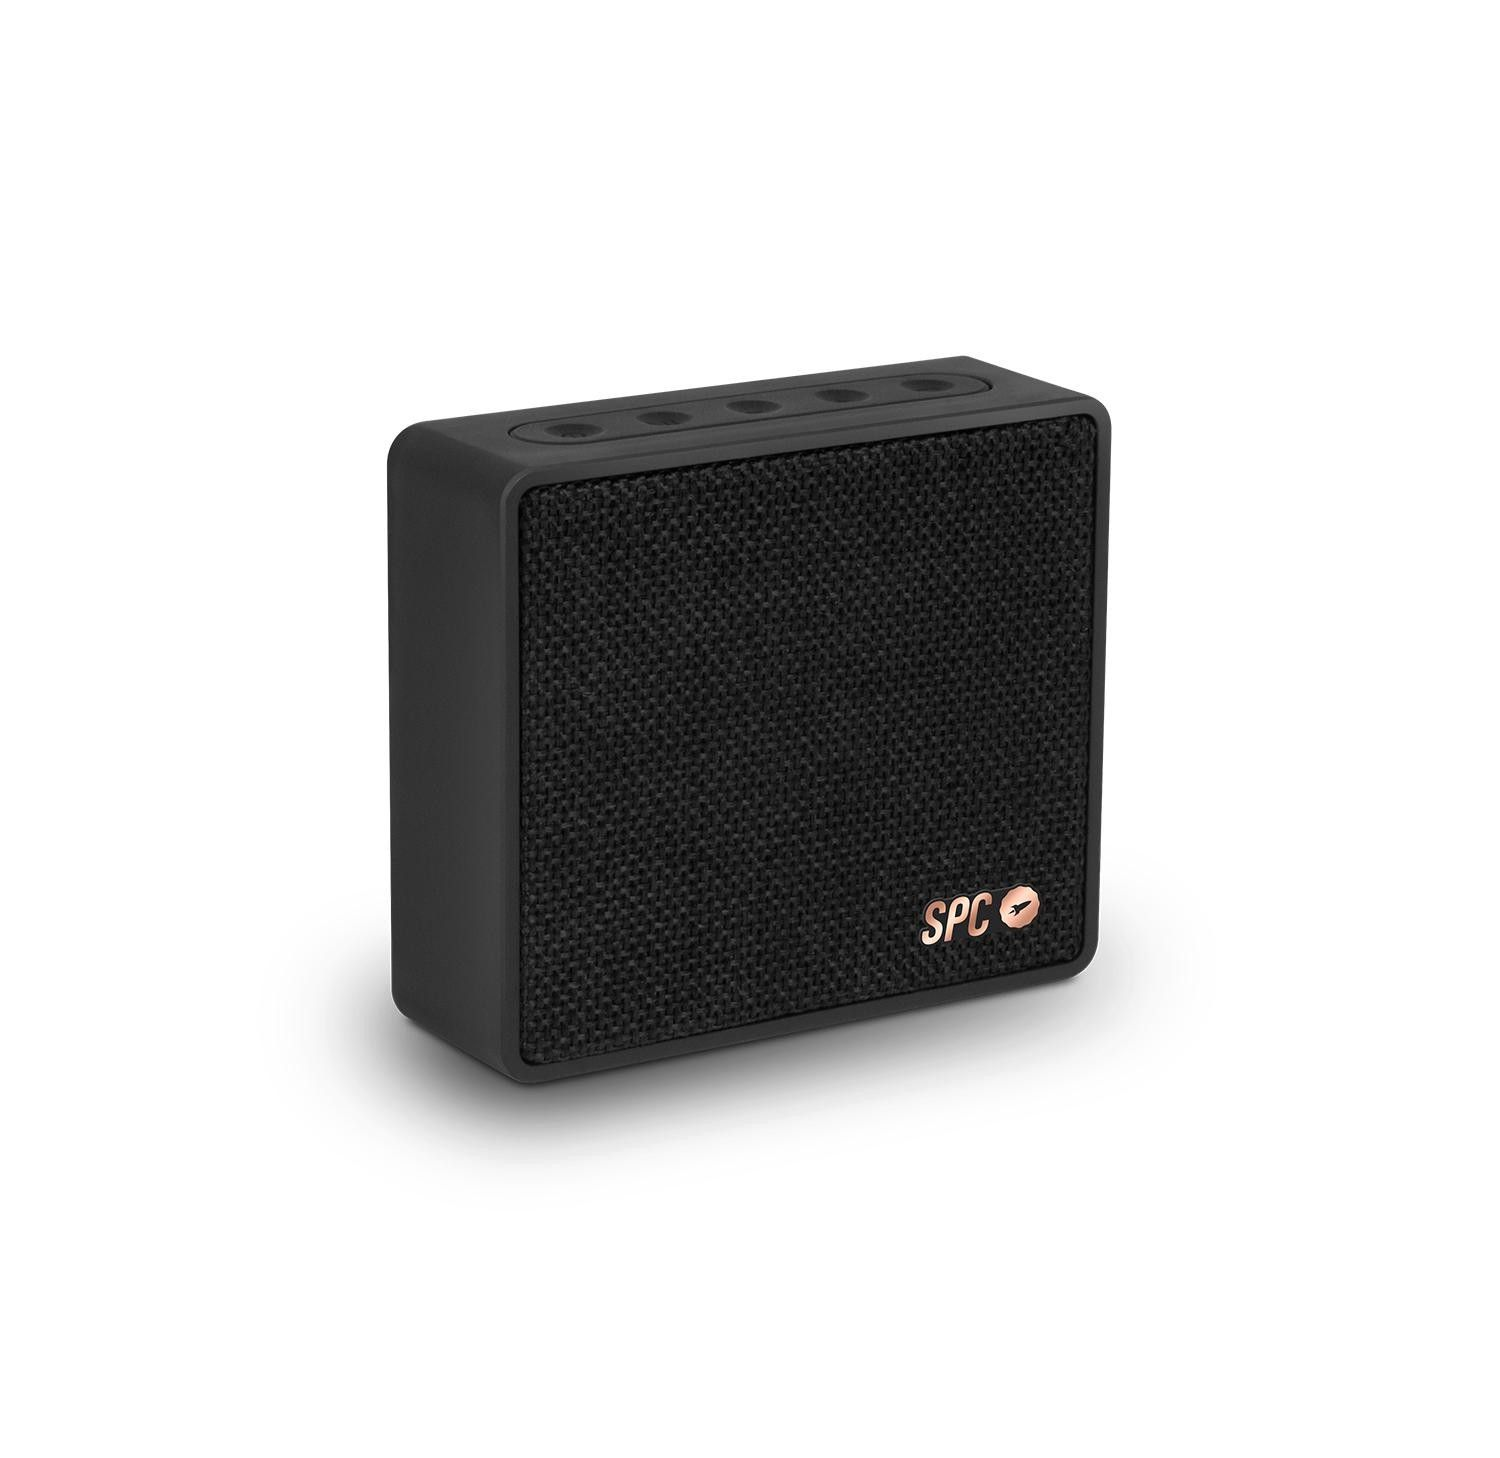 spc one 4w rectangulo negro